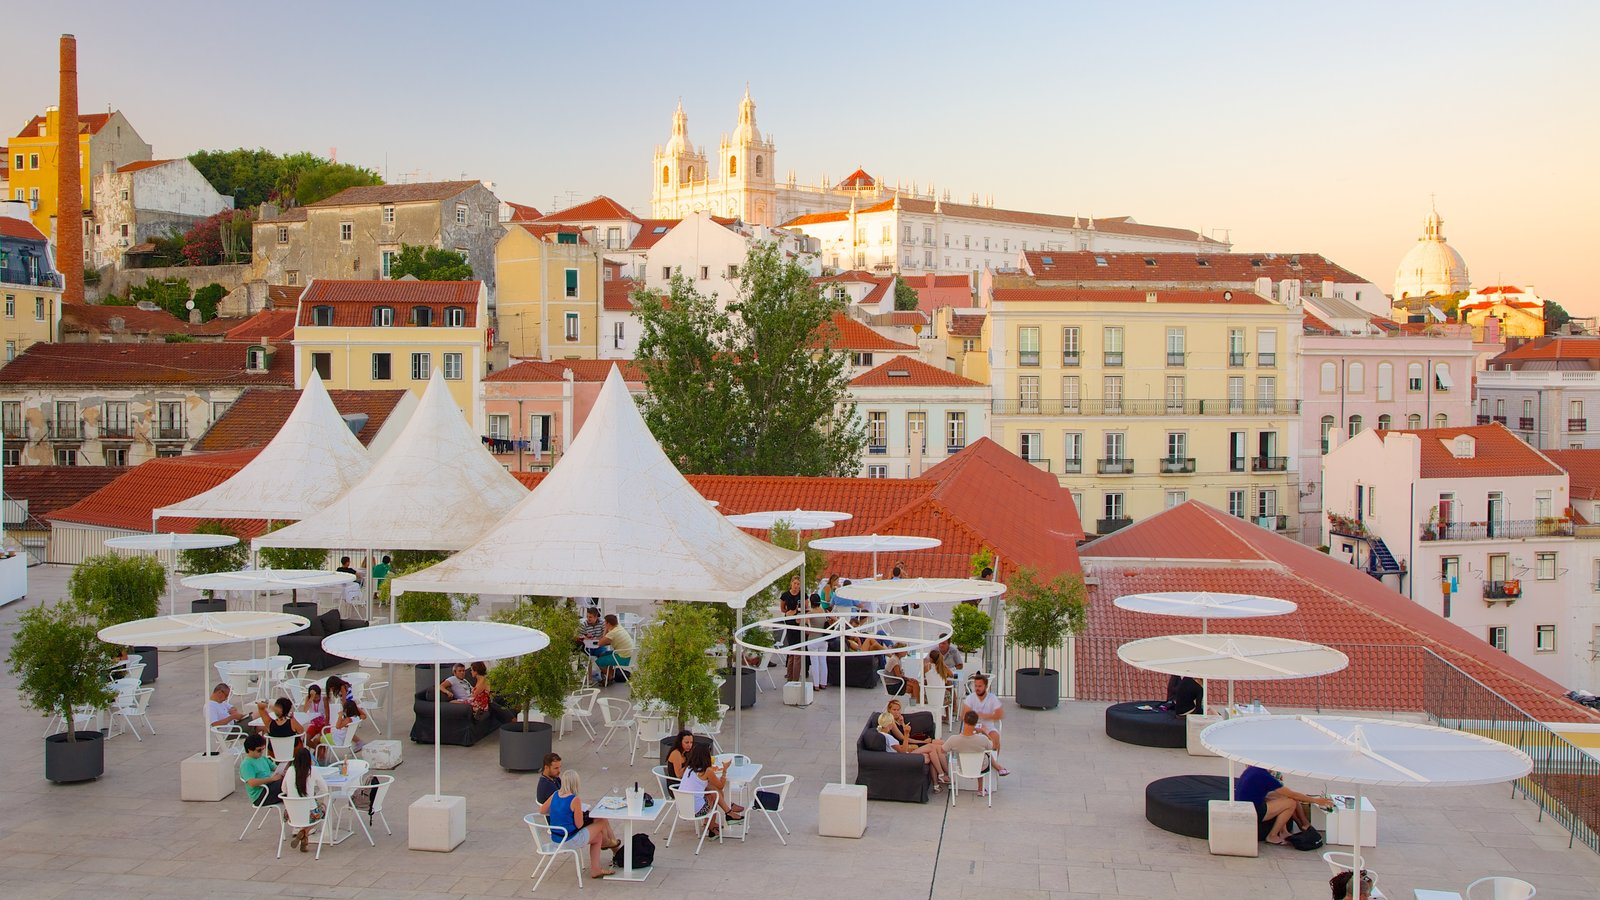 Alfama which includes heritage architecture, a city and outdoor eating